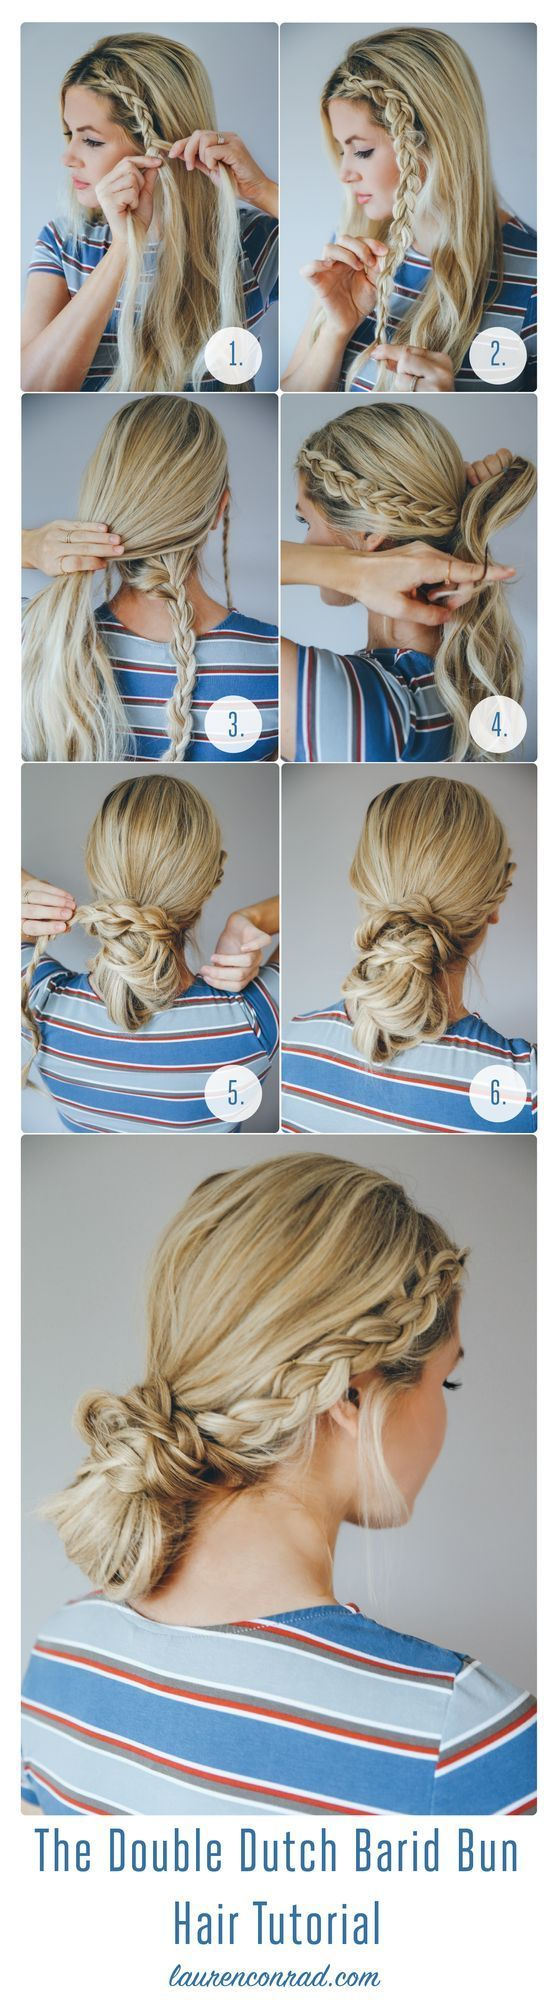 Today we are welcoming to the site one of Team LC's very favorite bloggers, Amber Fillerup of Barefoot Blonde. Amber's braids and updos are what our hair dreams are made of. We're so excited to have h